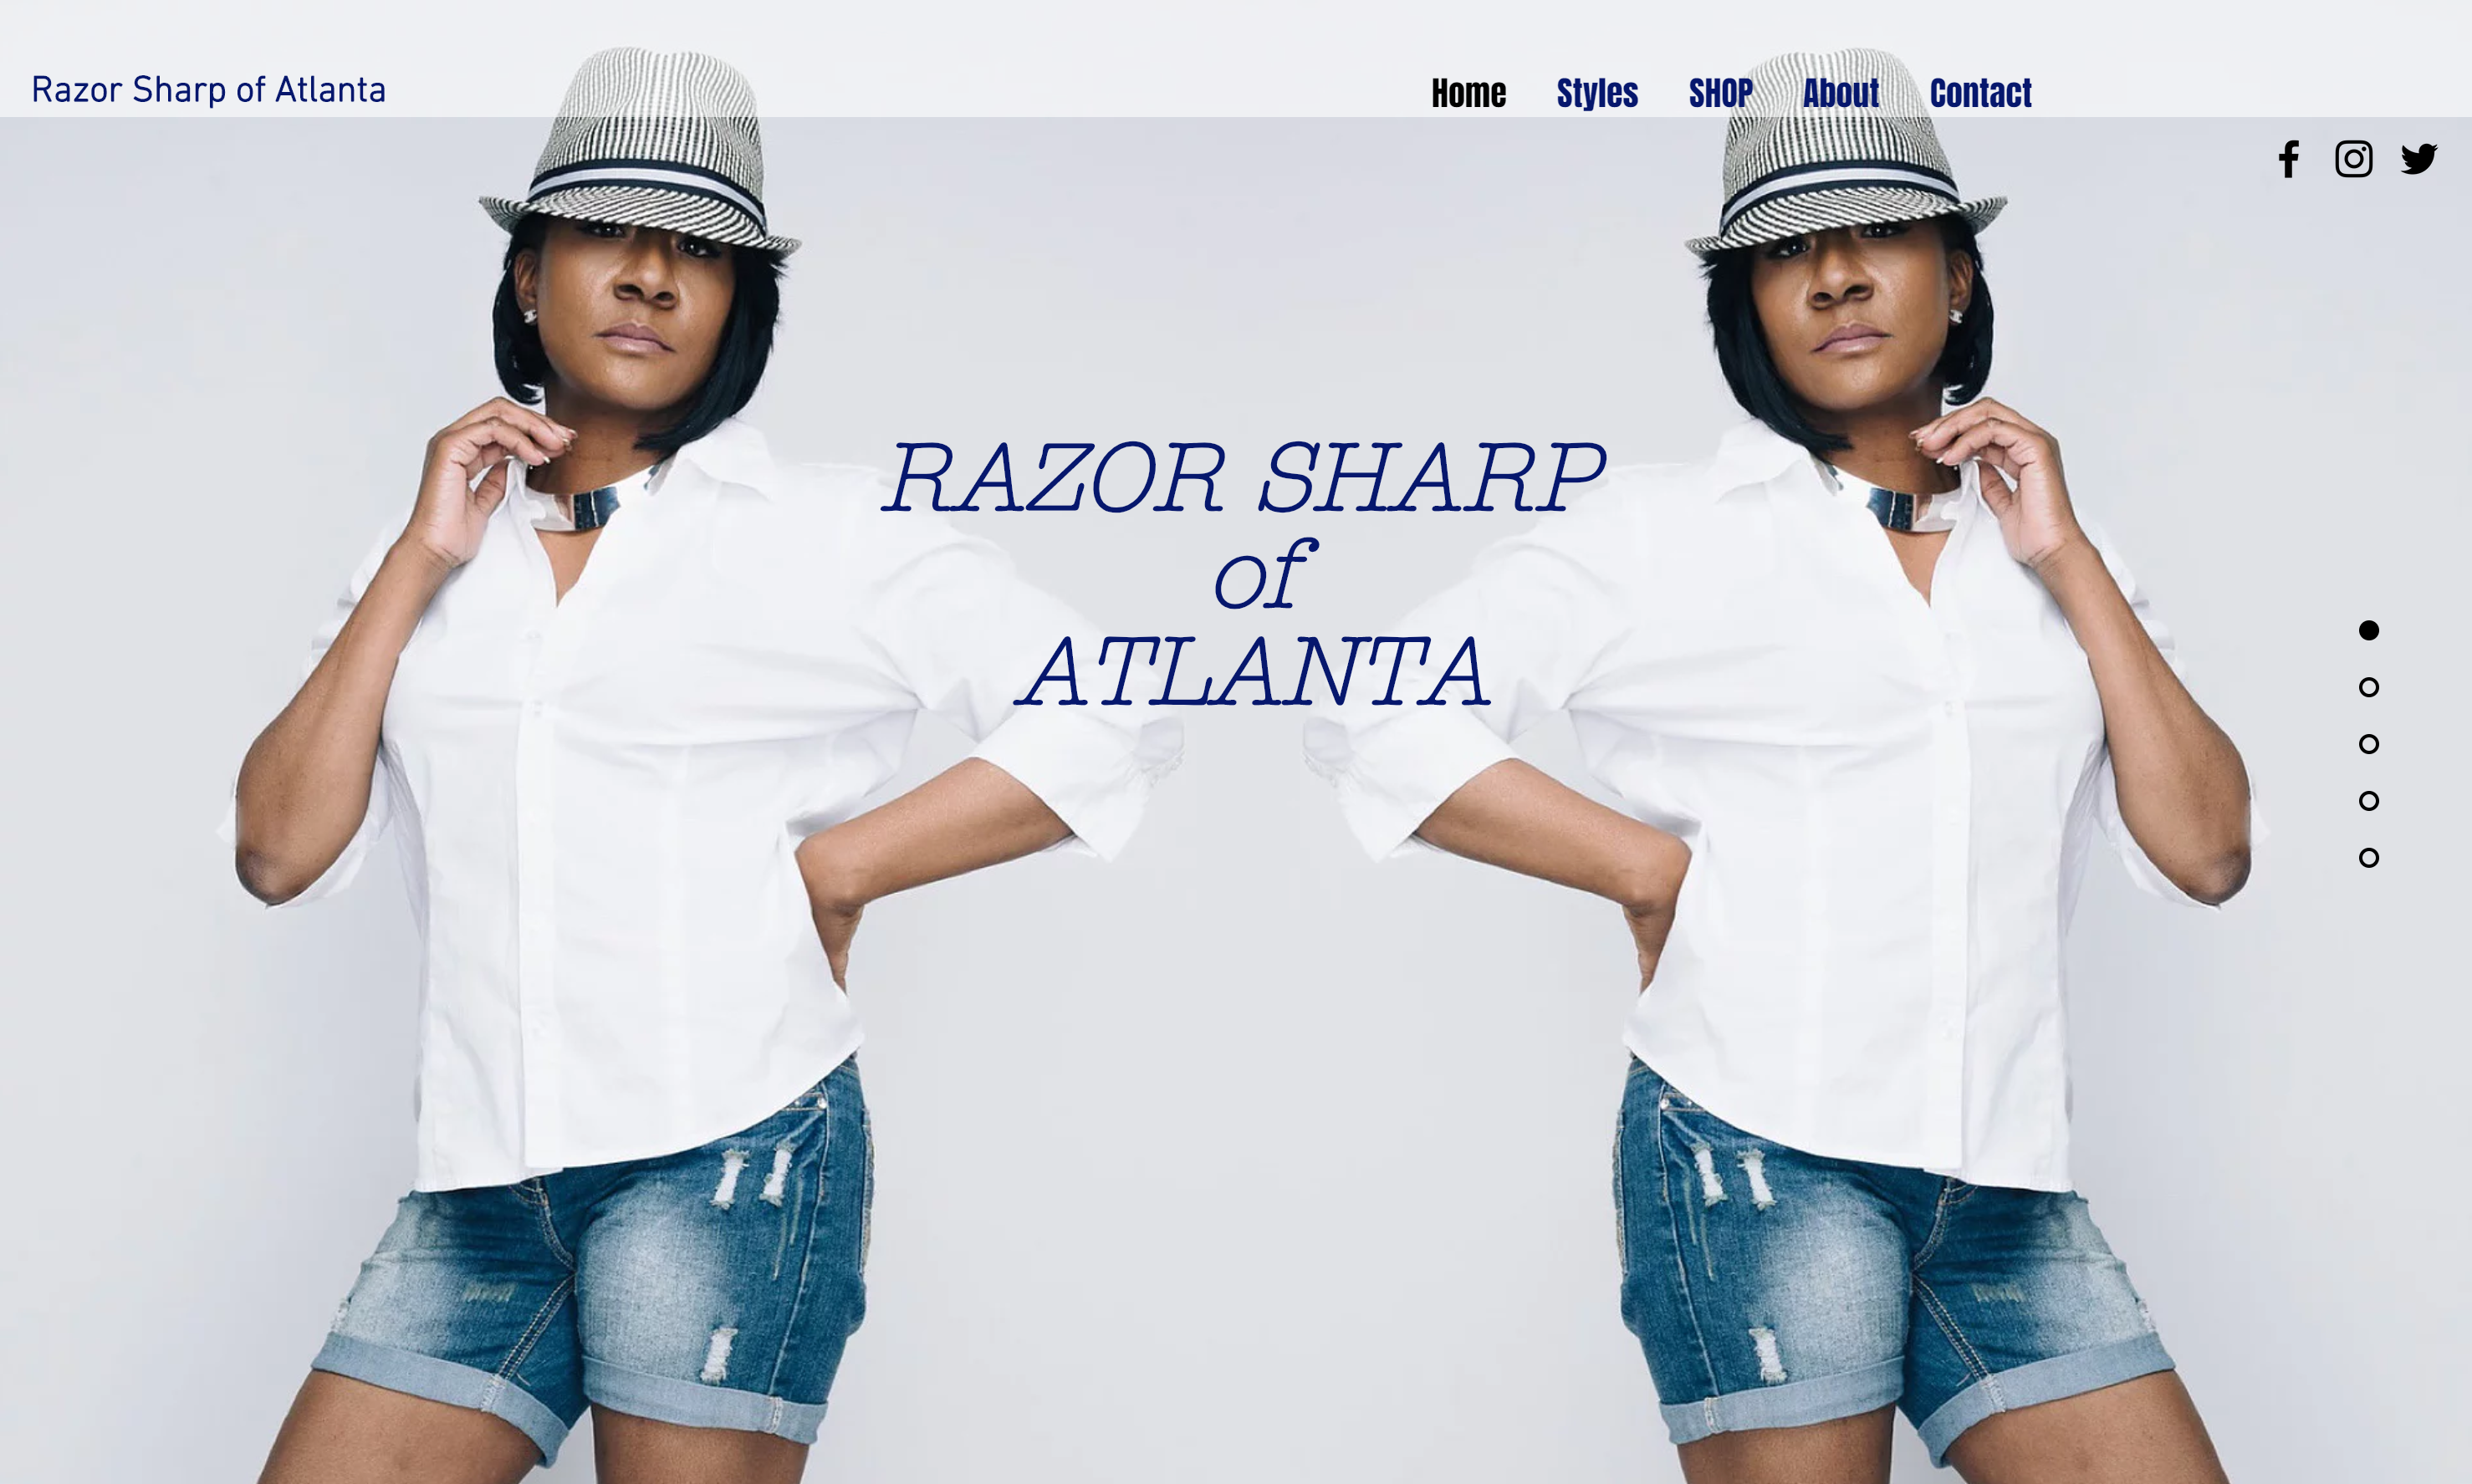 Razor Sharp of Atlanta